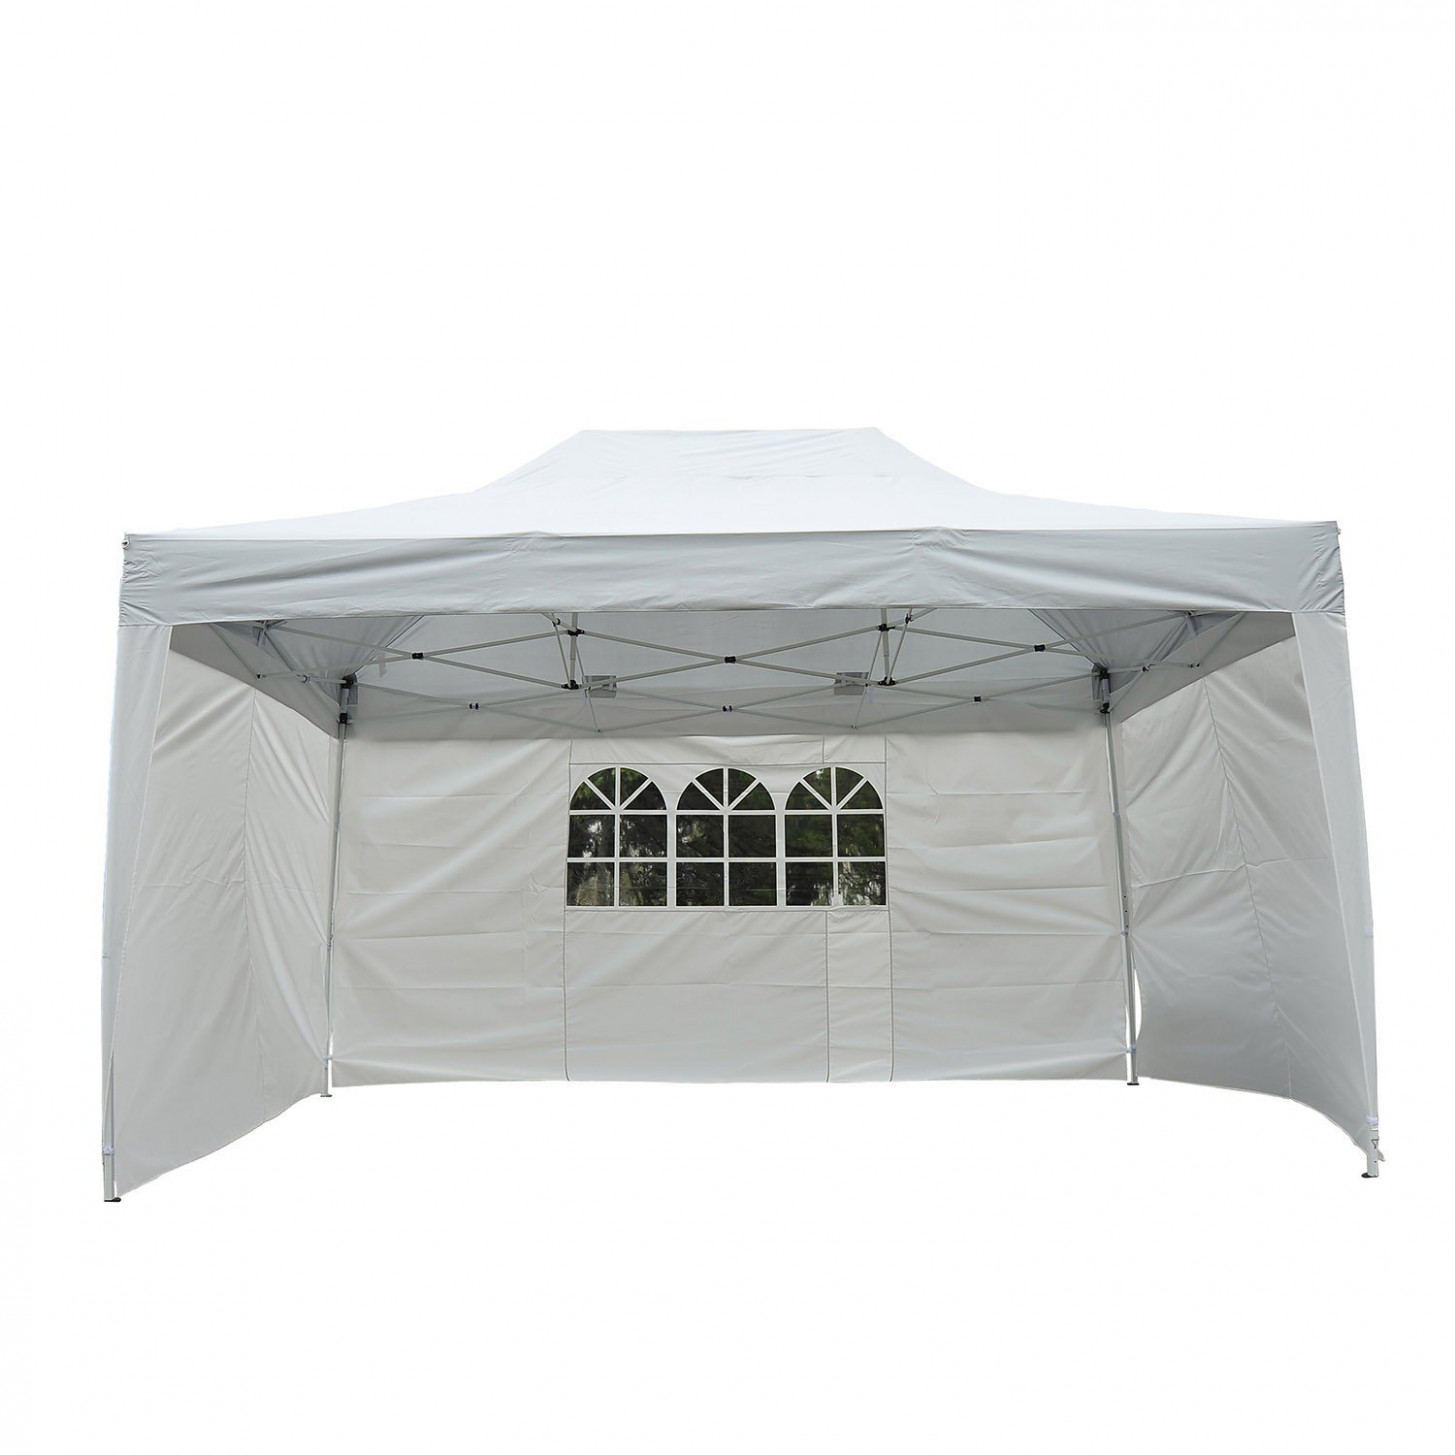 Outsunny 10'x15' Outdoor Pop Up Party Tent Folding Wedding Gazebo Canopy with 3 Removable Sidewalls, White Aosom